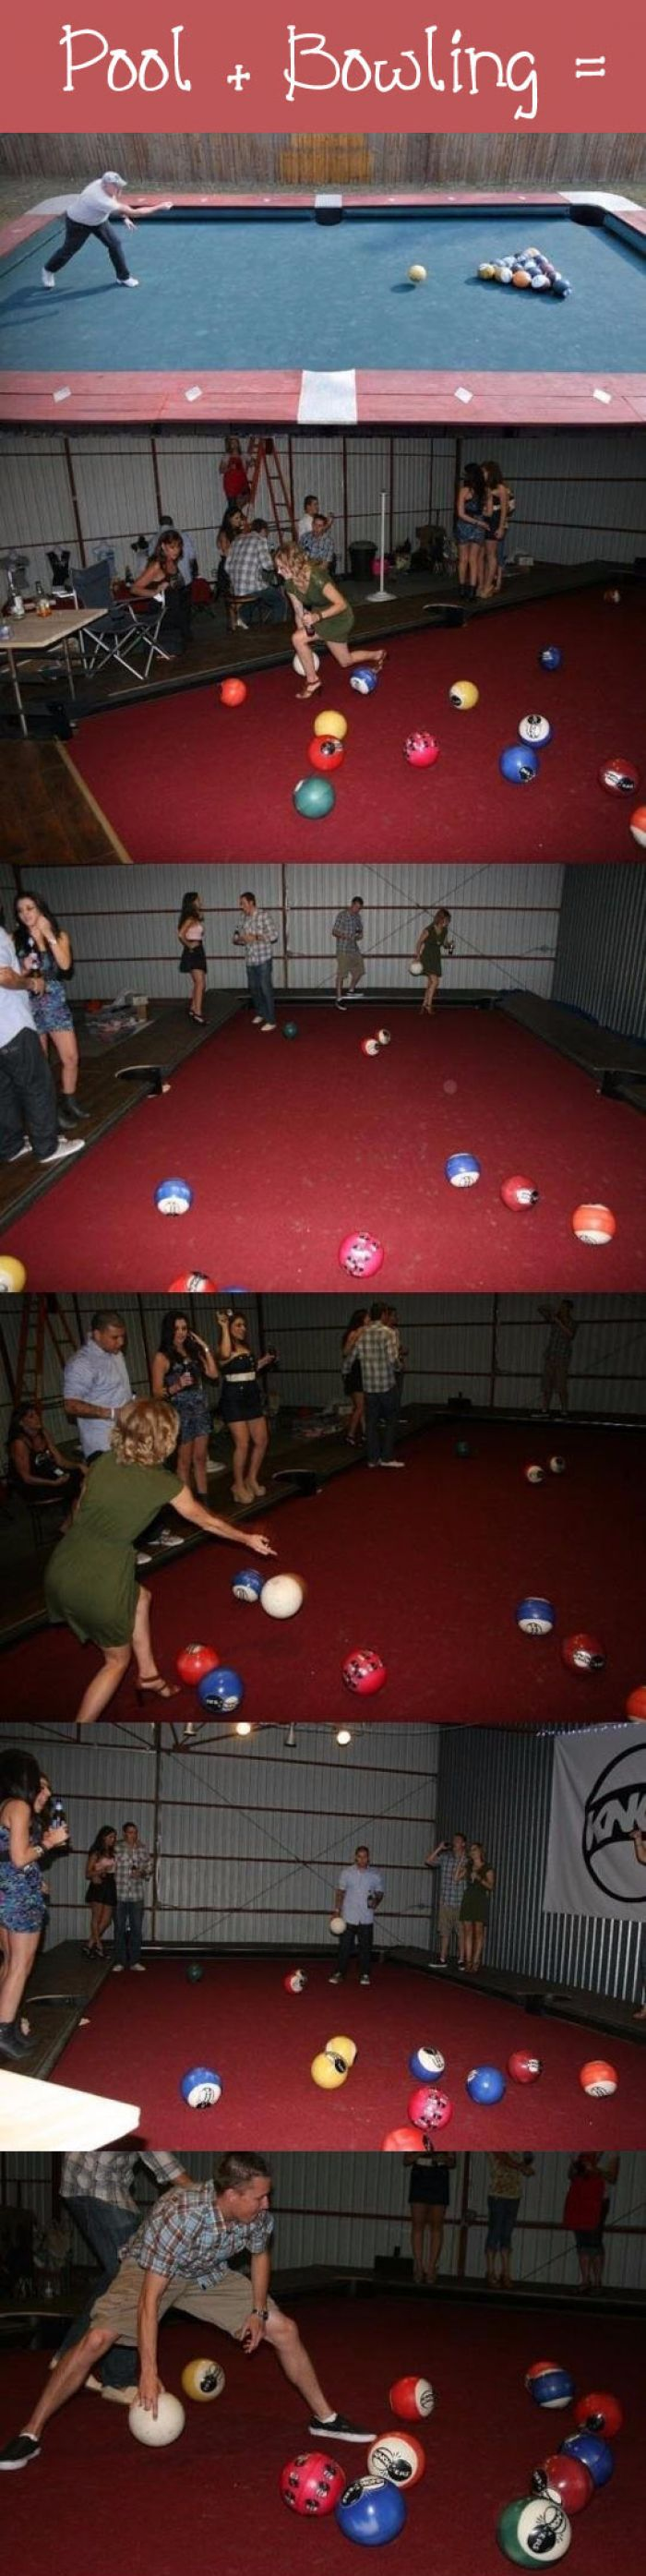 If You Mix Pool And Bowling - GAG